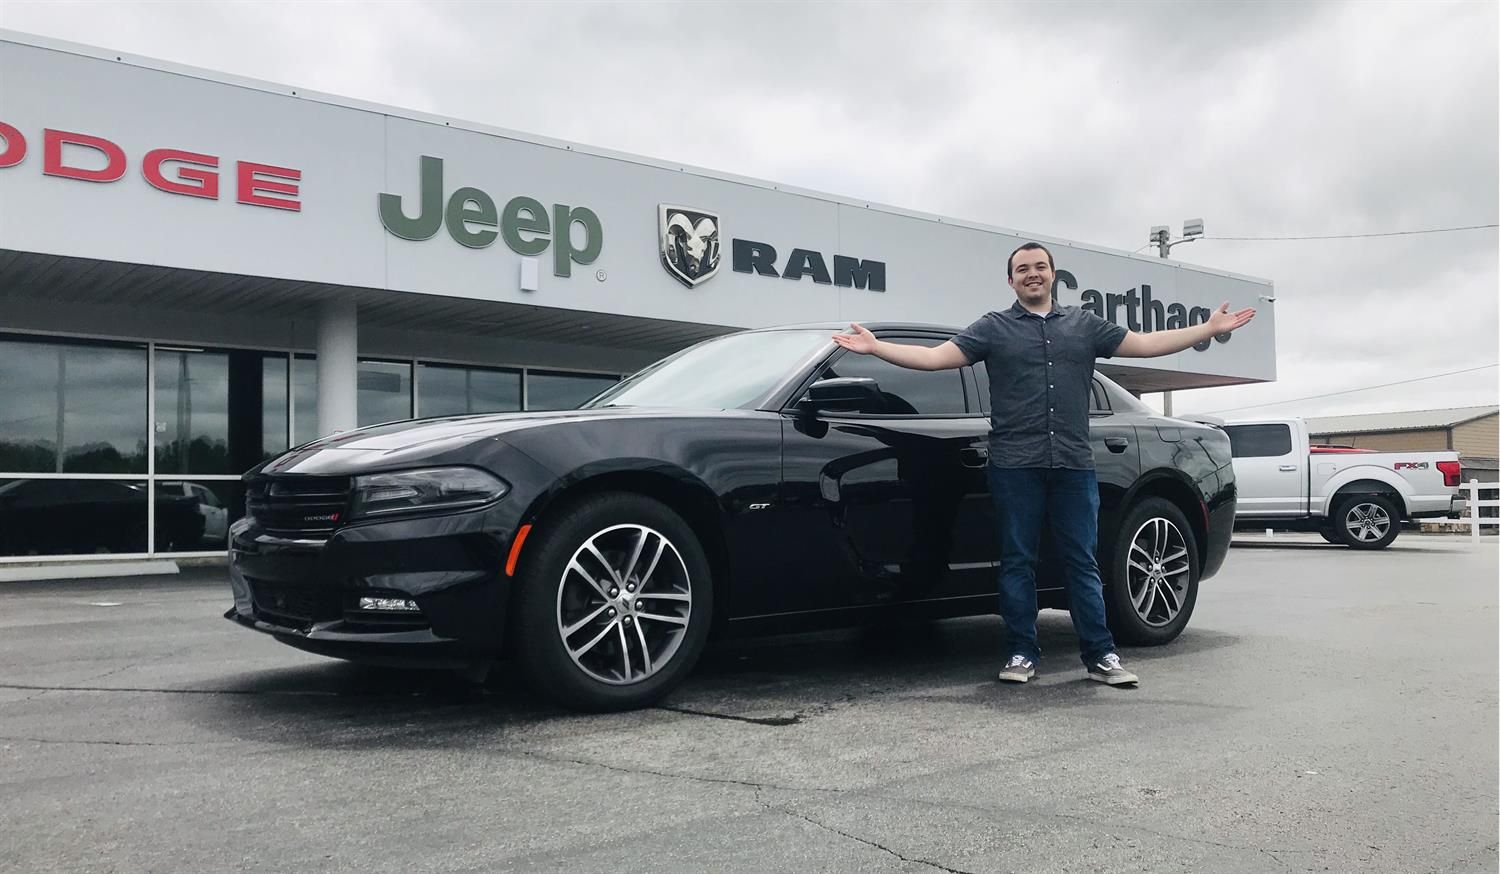 Trenton S New 2018 Dodge Charger Congratulations And Best Wishes